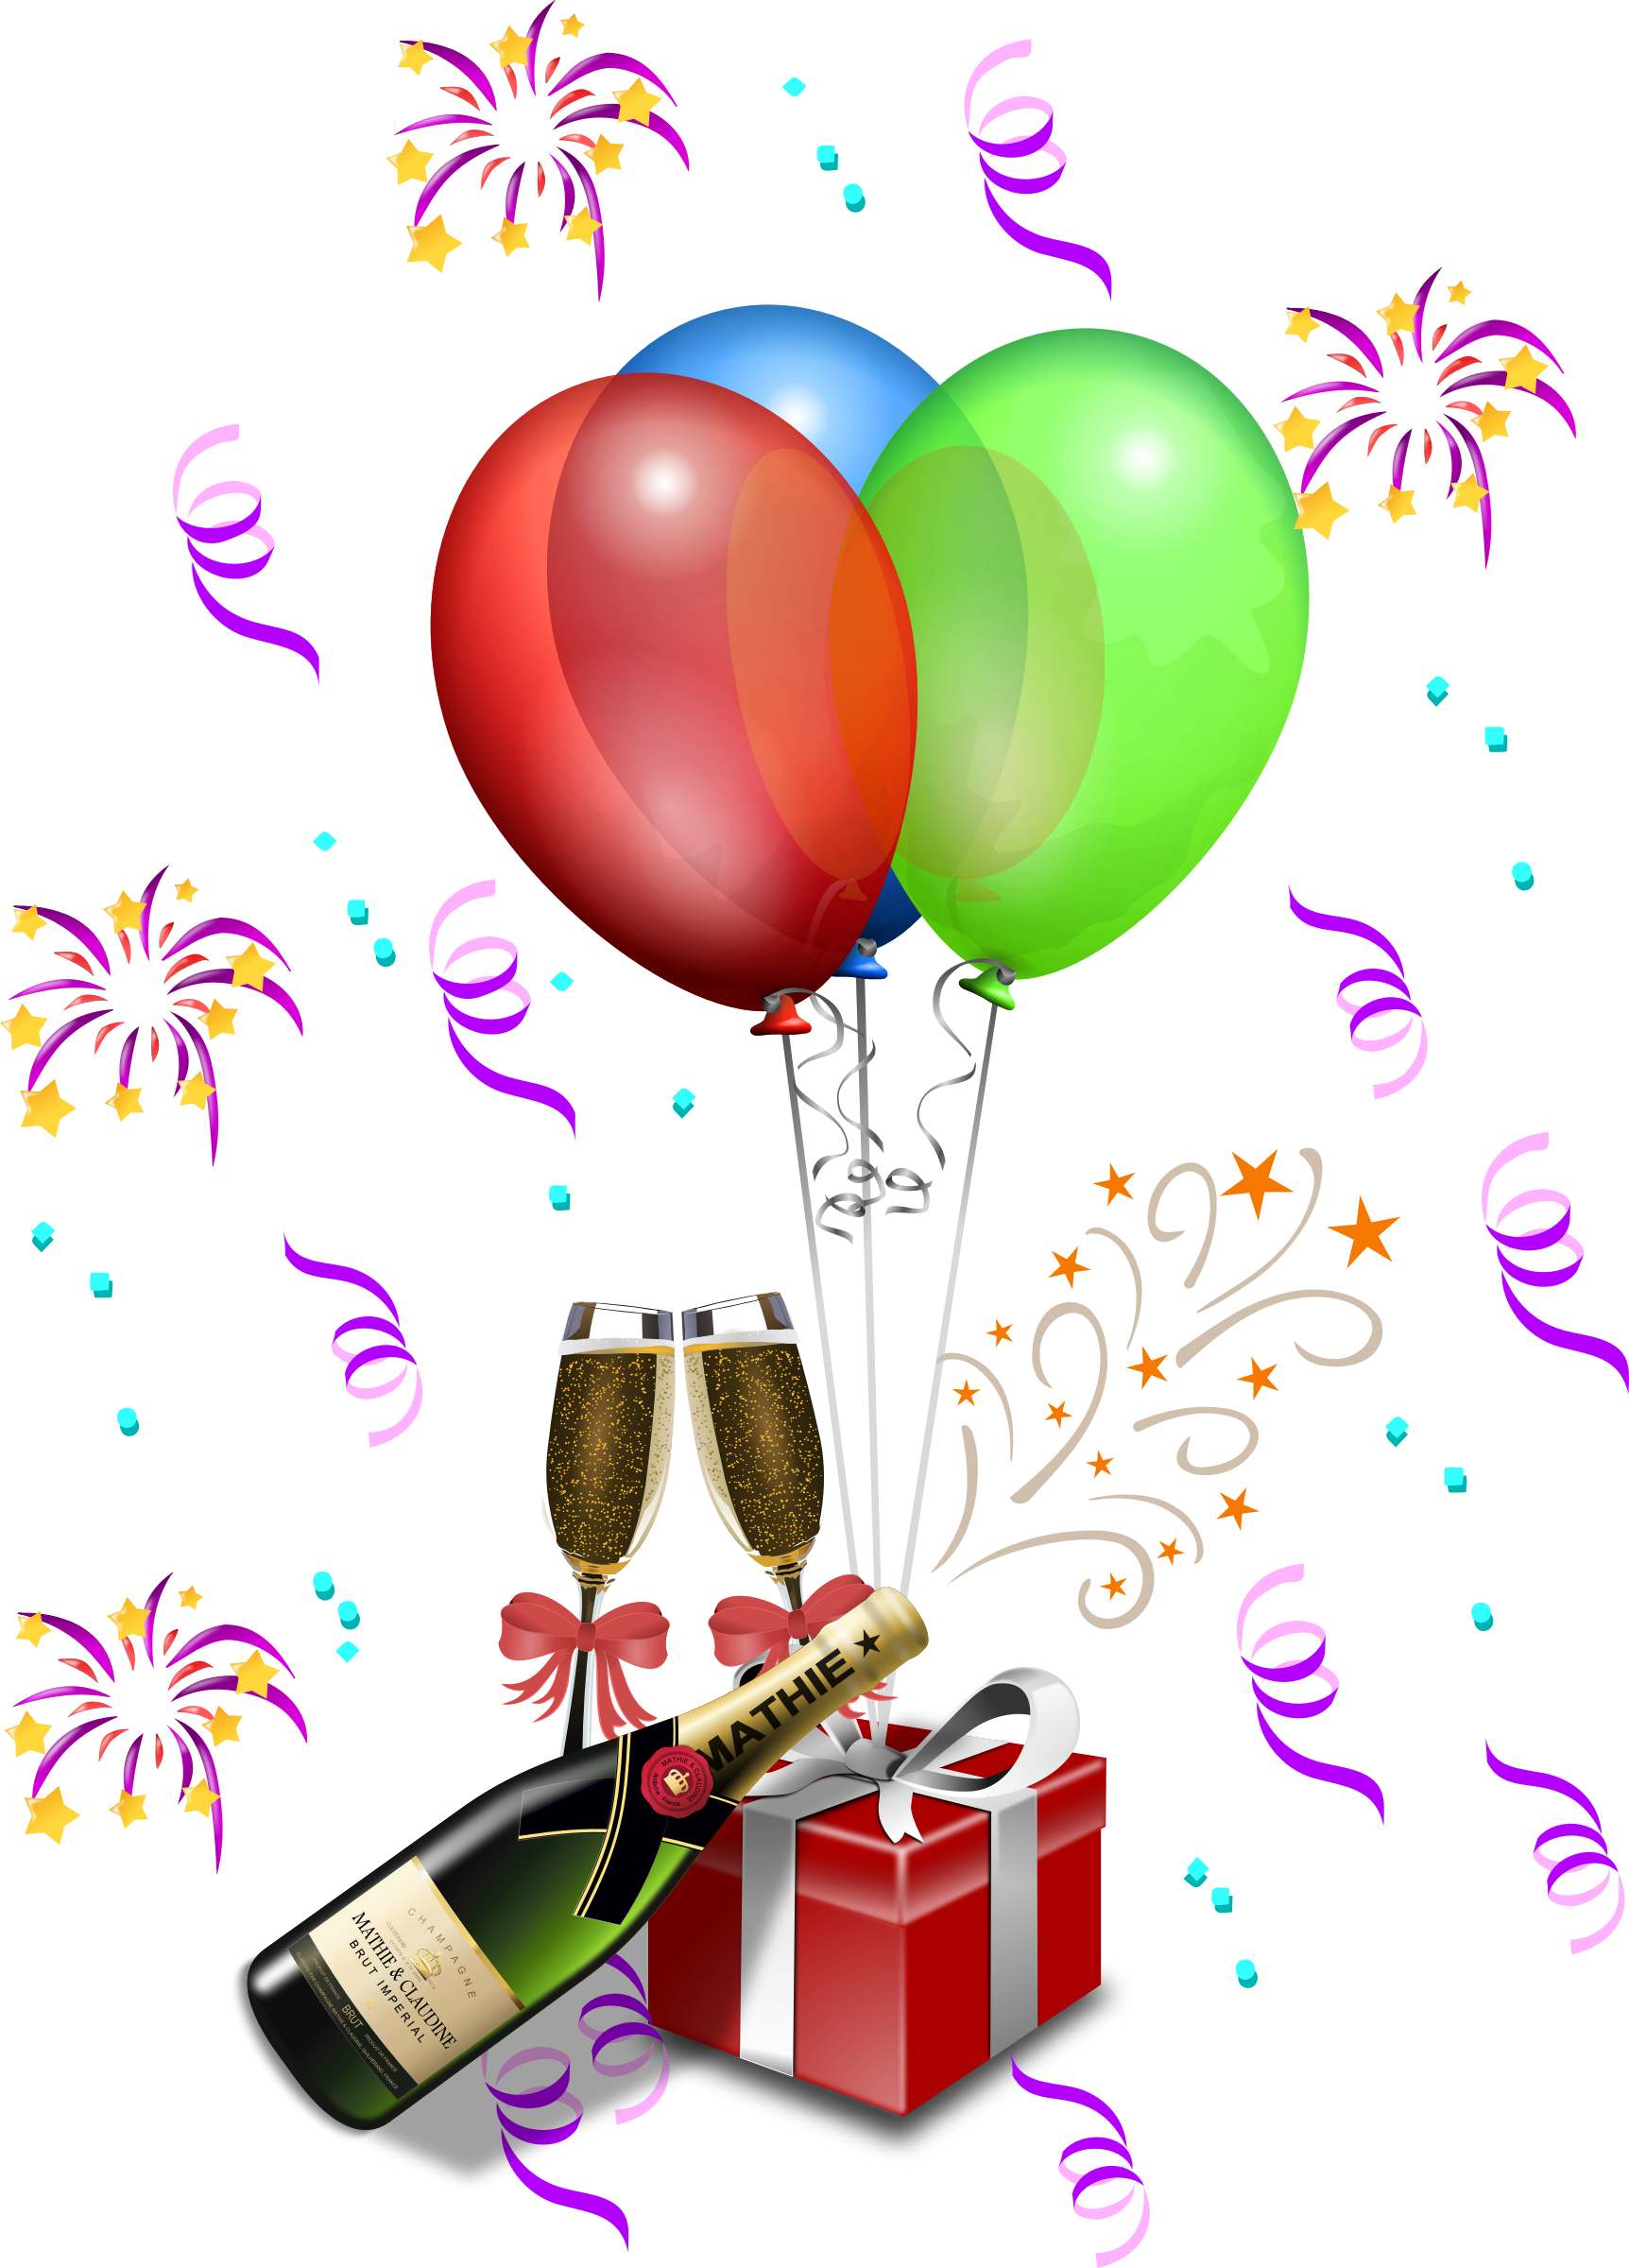 Celebrate clipart champagne. The small steps just